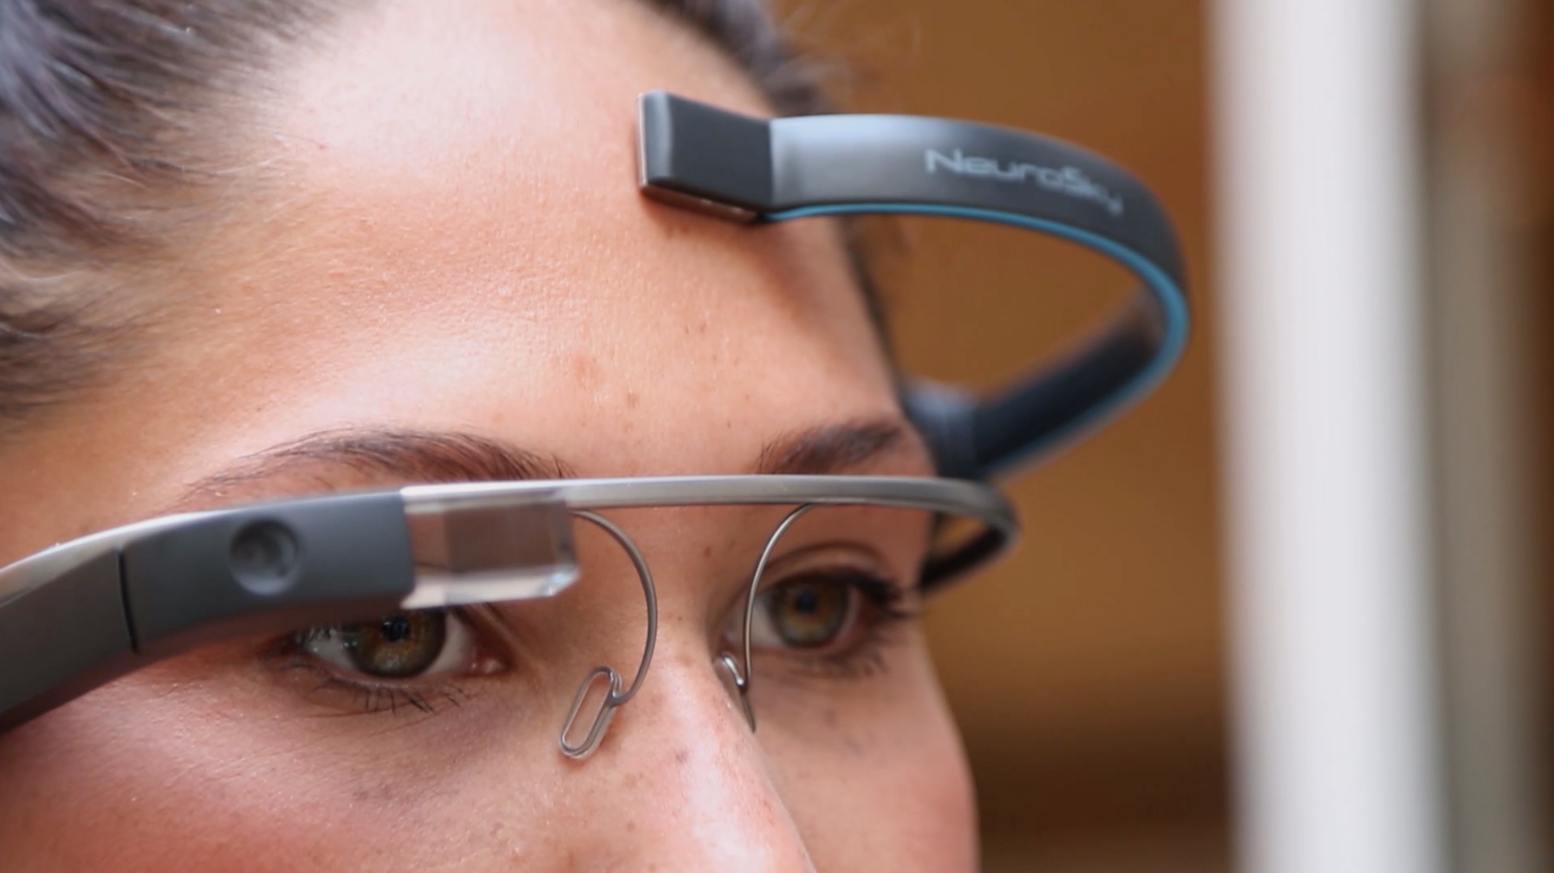 MindRDR App Enables Google Glass Control with Brainwaves